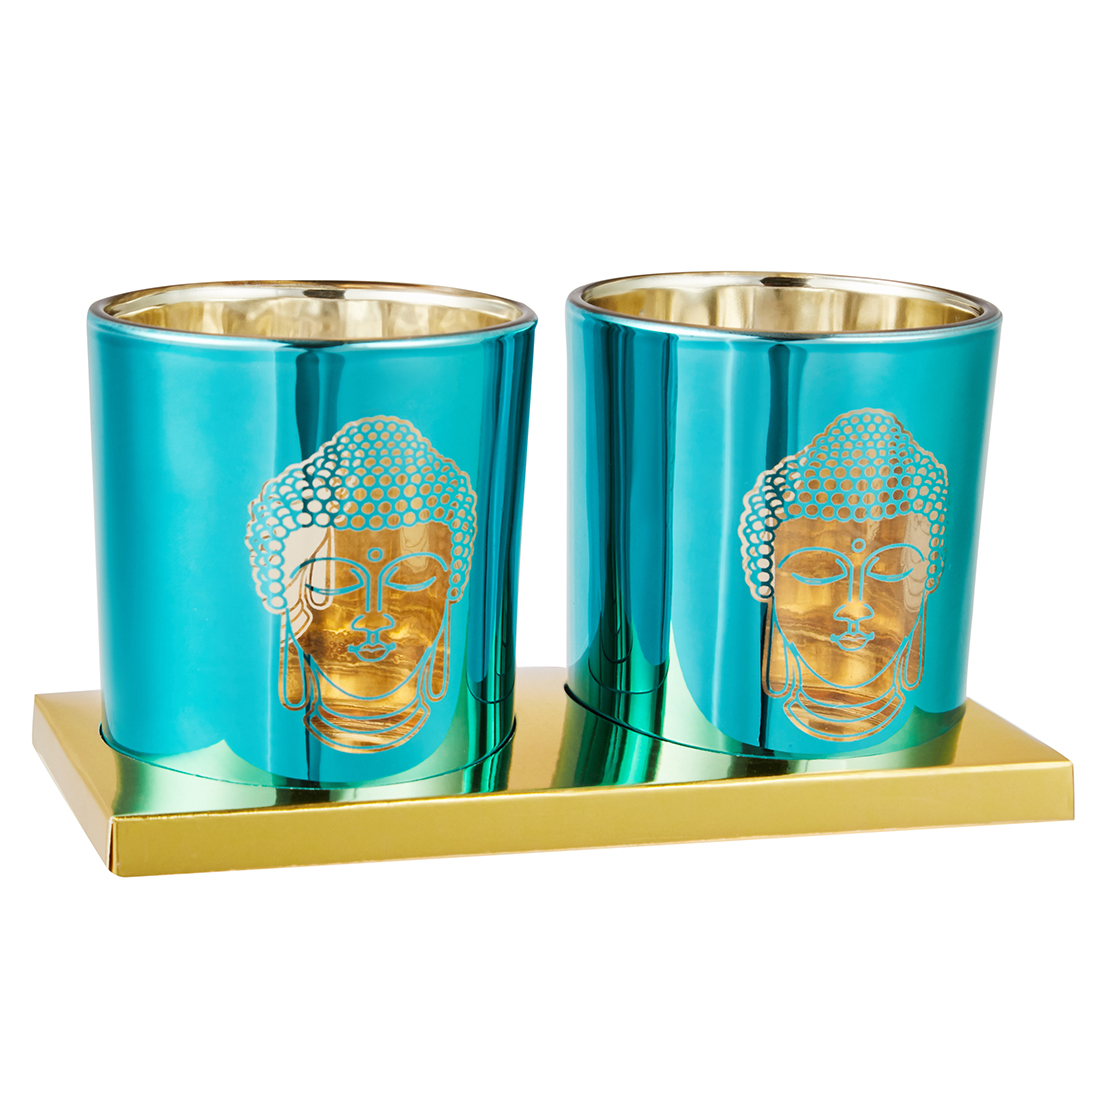 Zahara Small Set Of Two Blue Candle Holder With Etched Buddha Face Metal Candle Holders in Blue Colour by Living Essence